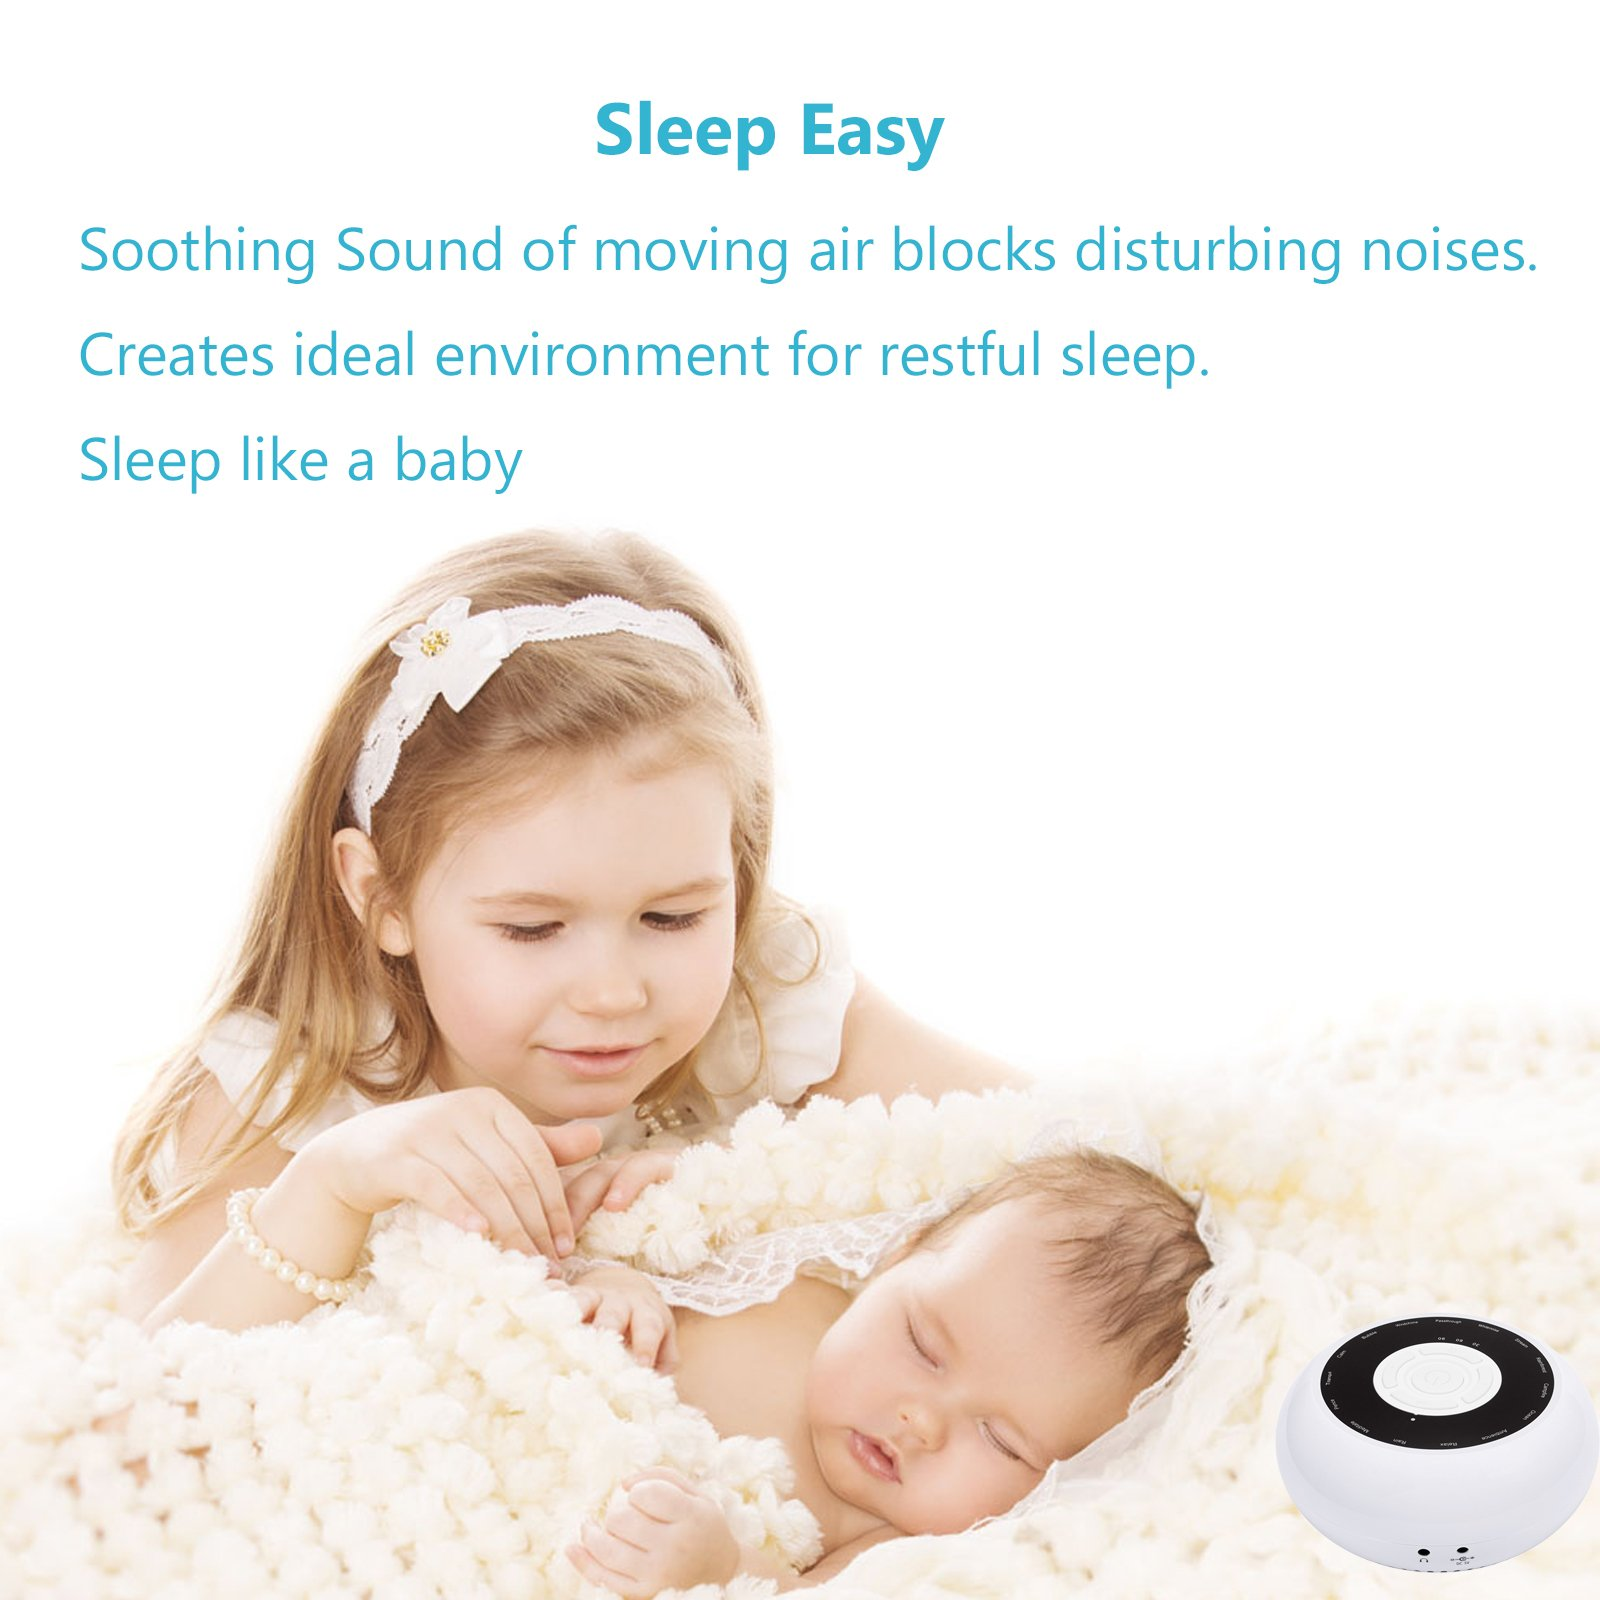 L\'émouchet White Noise Sleep Machine Natural Relaxing Sound Soother Conditioner 15 Soothing Sound Tracks Timer Option 3.5mm Headphone Jack Volume Control, AS 1se (No lithium battery)